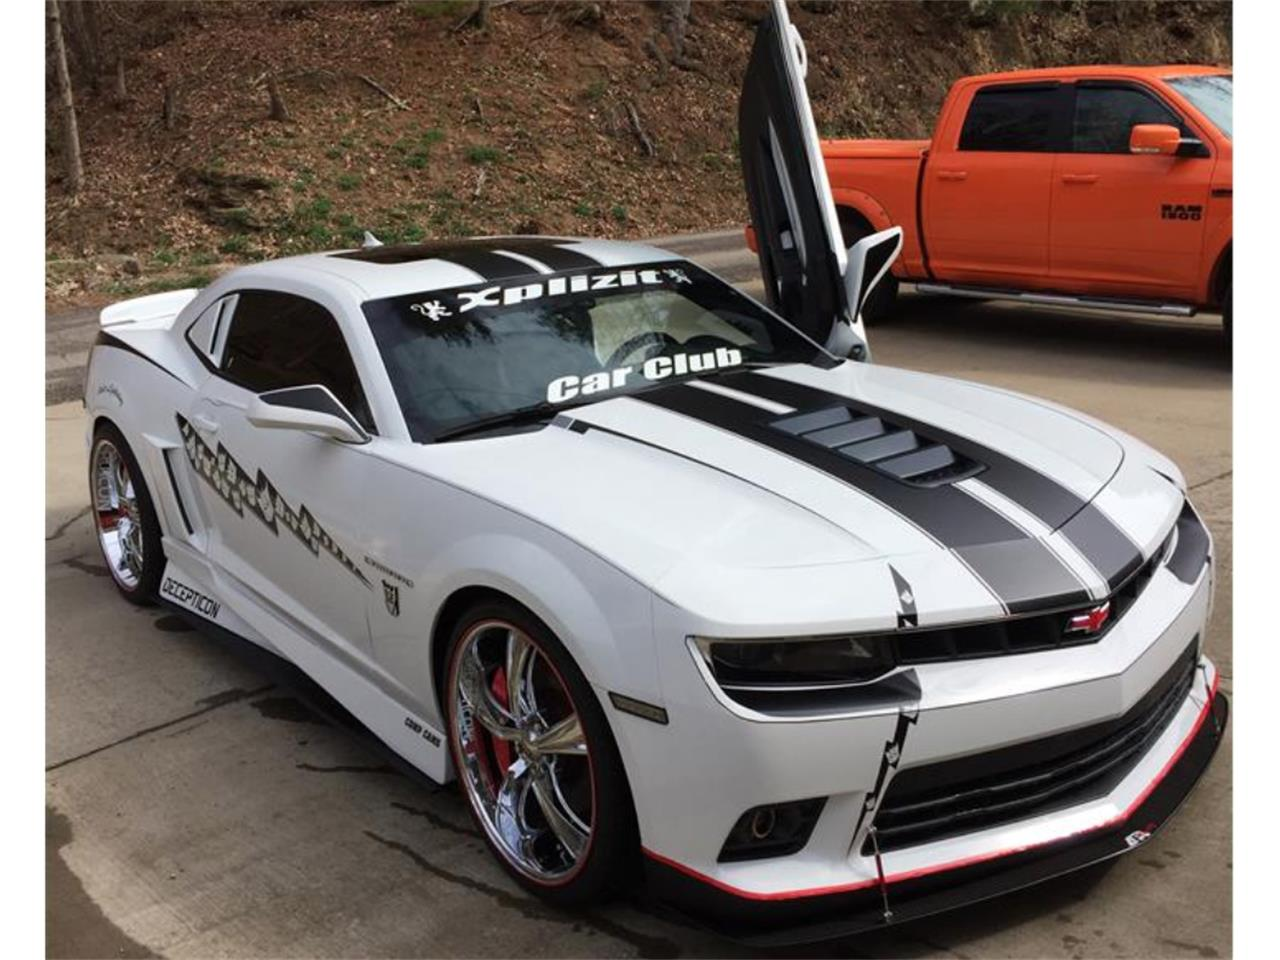 2014 Chevrolet Camaro SS (CC-1237689) for sale in Metz, West Virginia